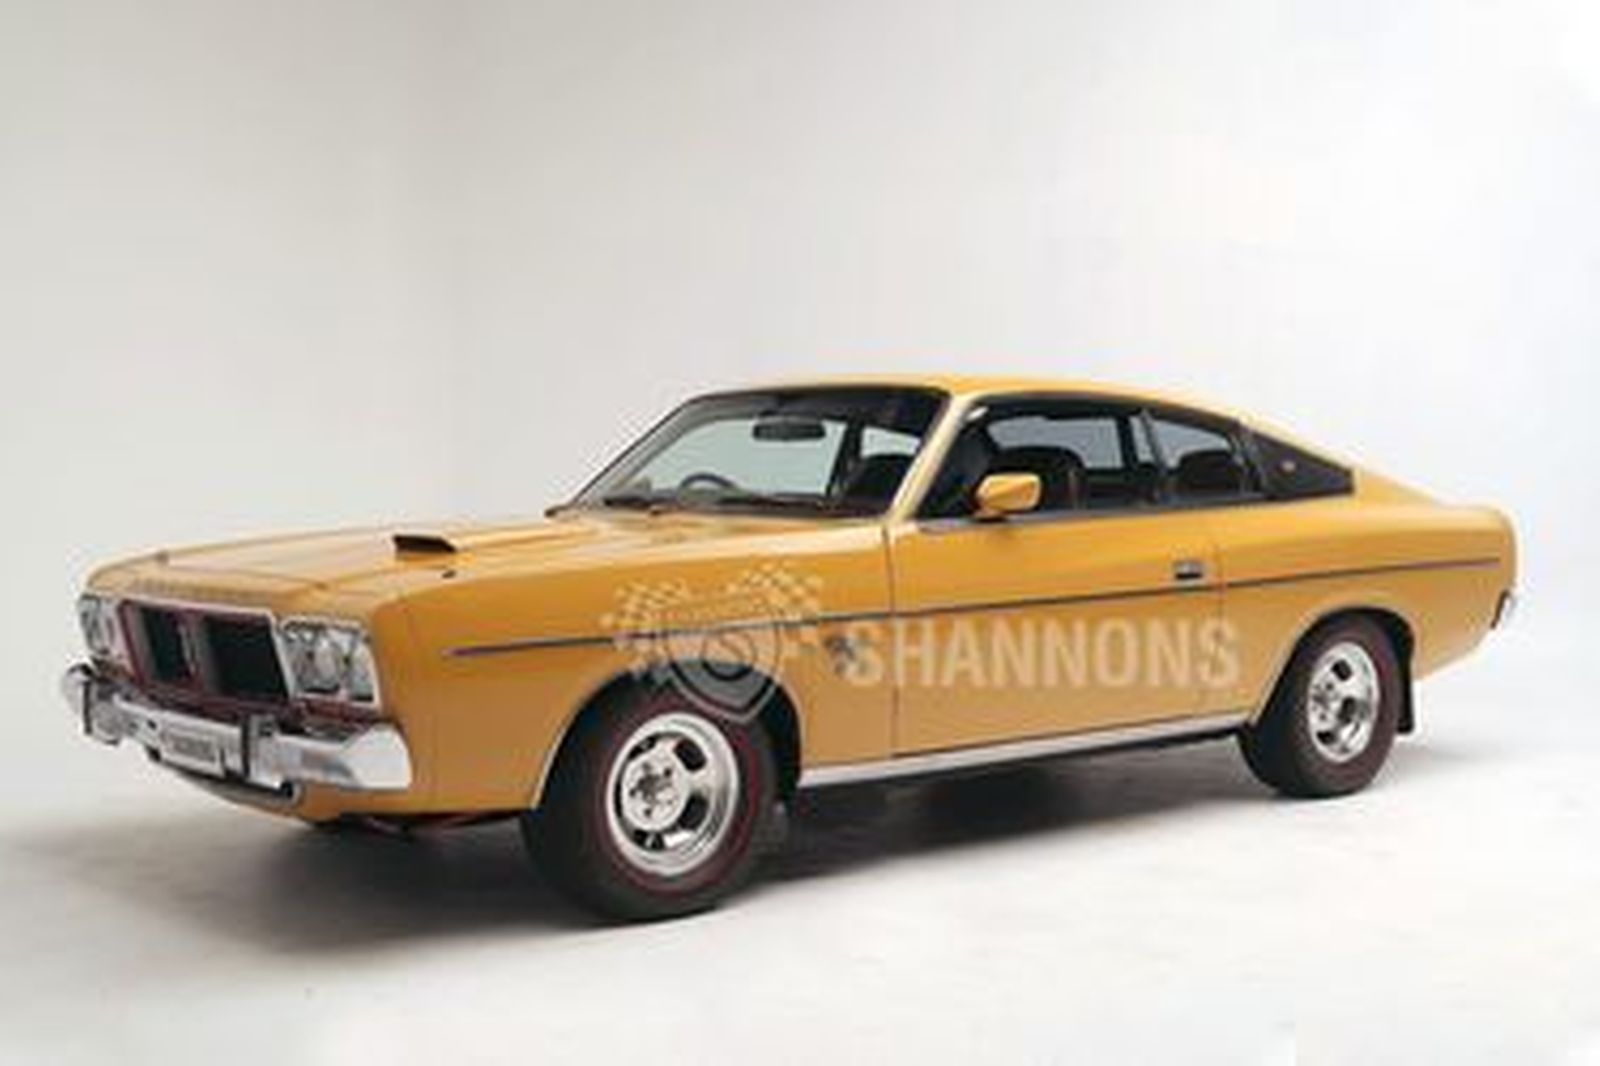 Chrysler CL Charger 770 265 'Manual' Coupe